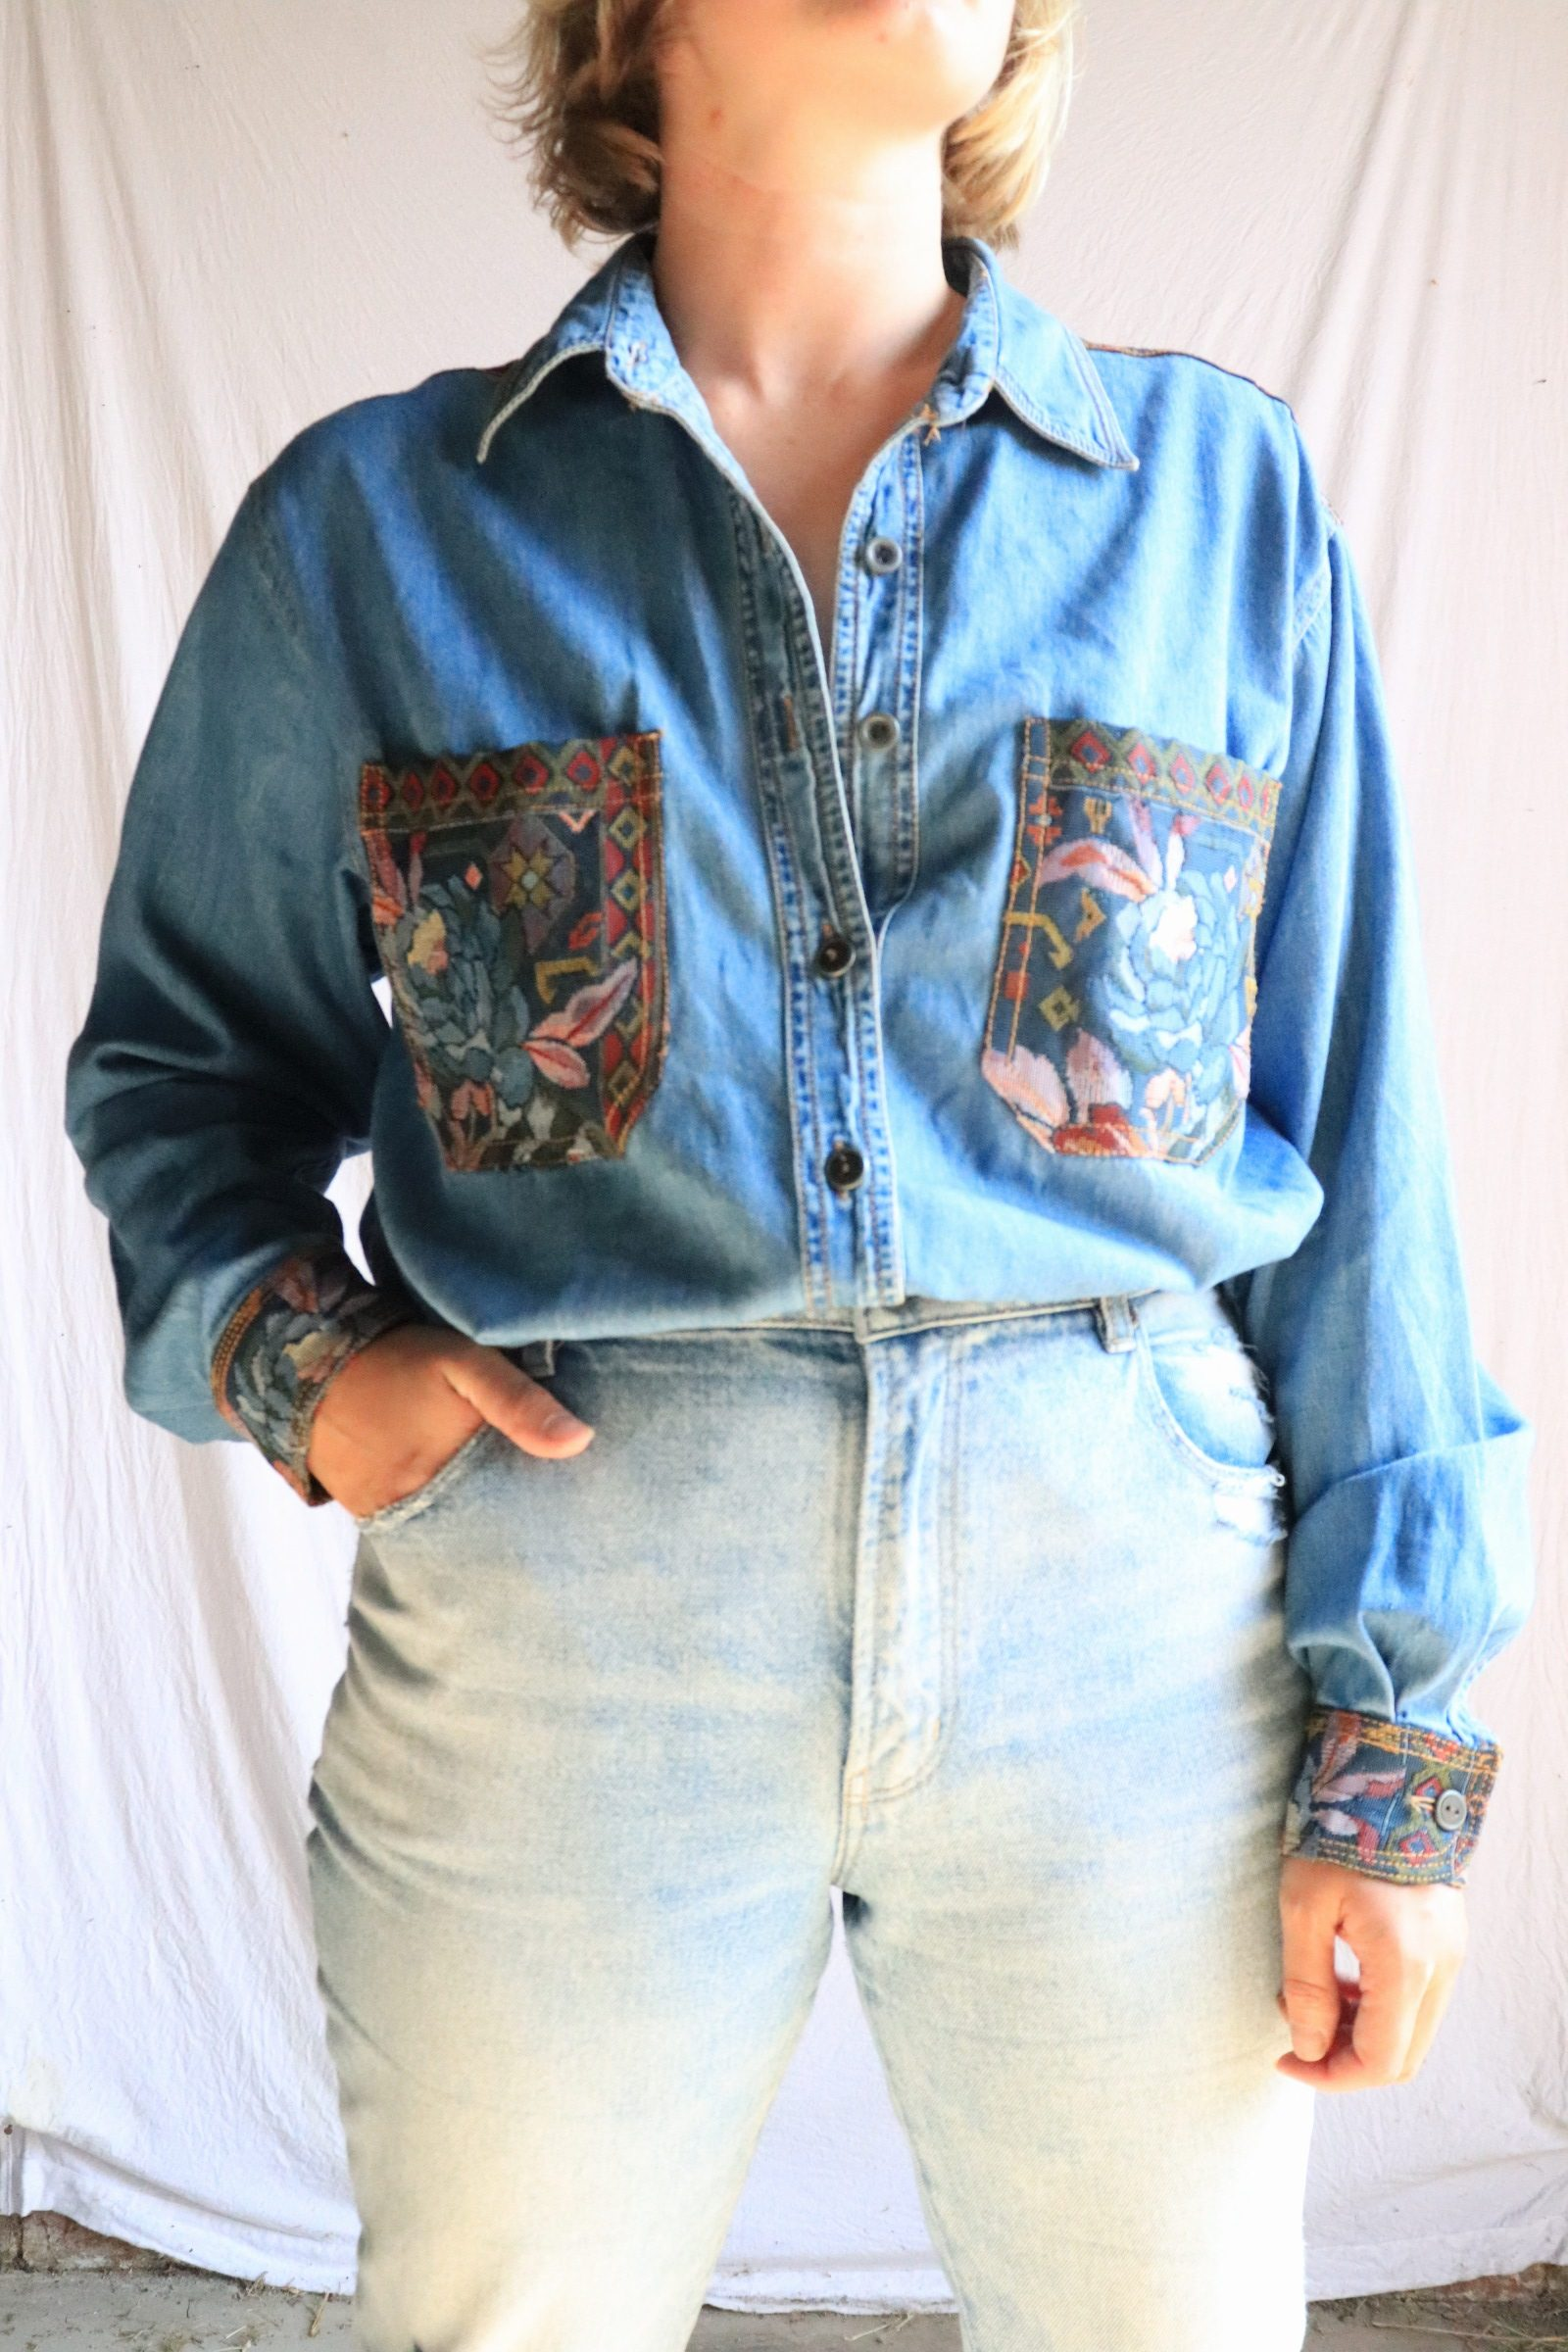 90s denim shirt with floral embroidery